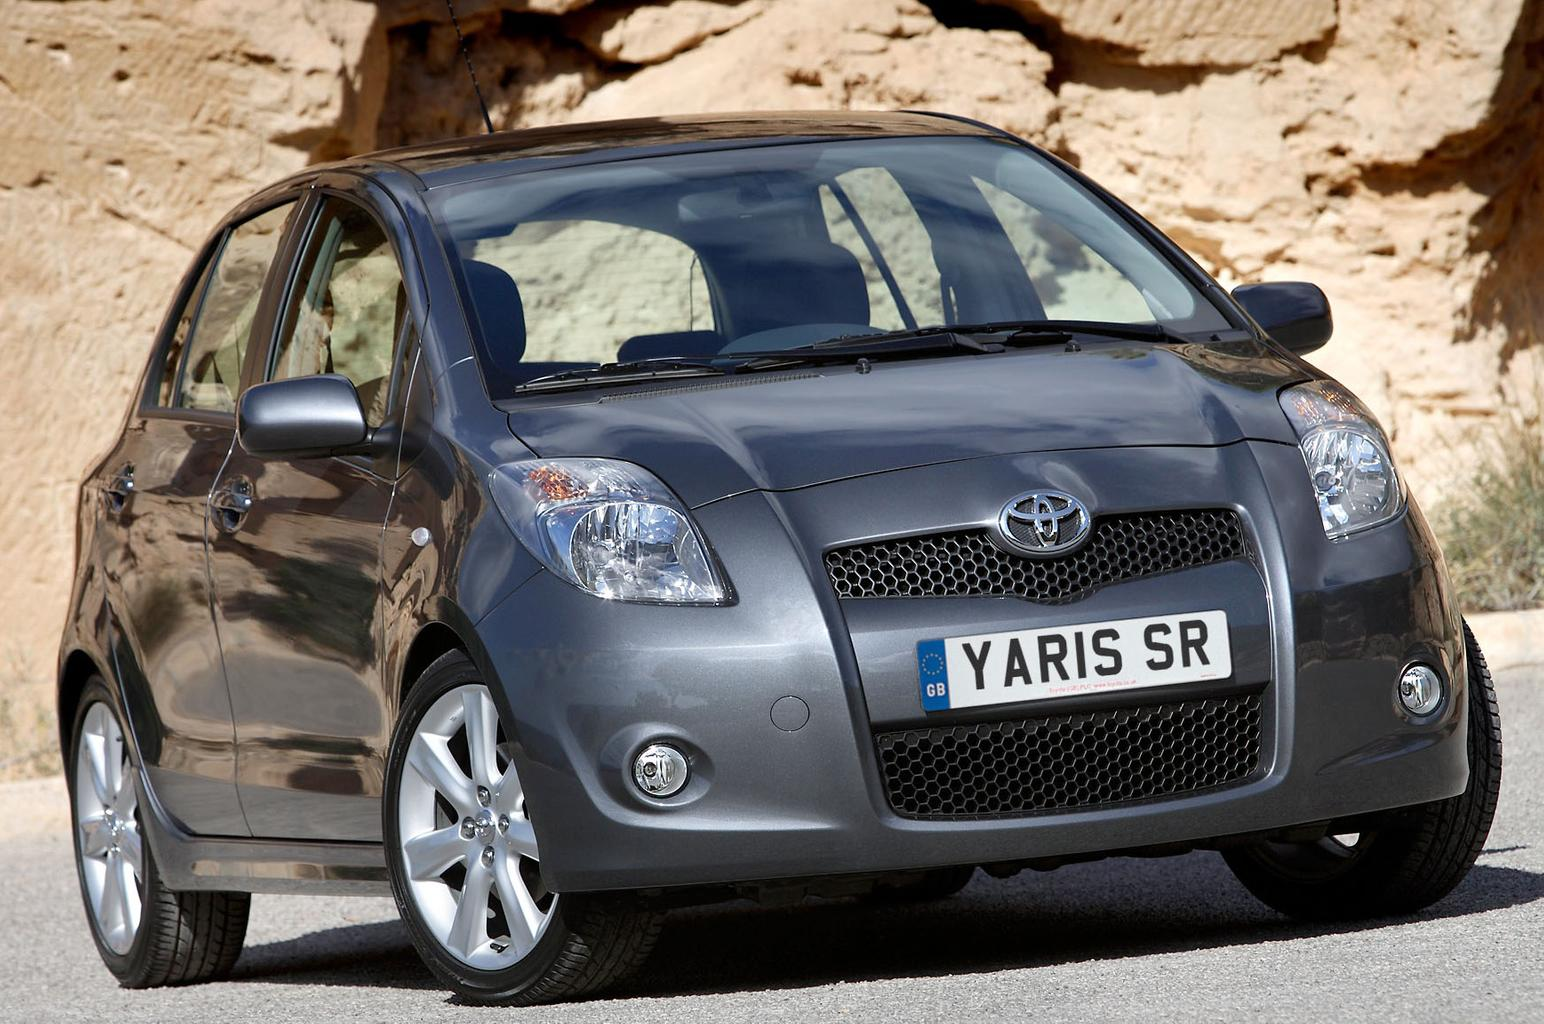 5 reasons to buy a Toyota Yaris